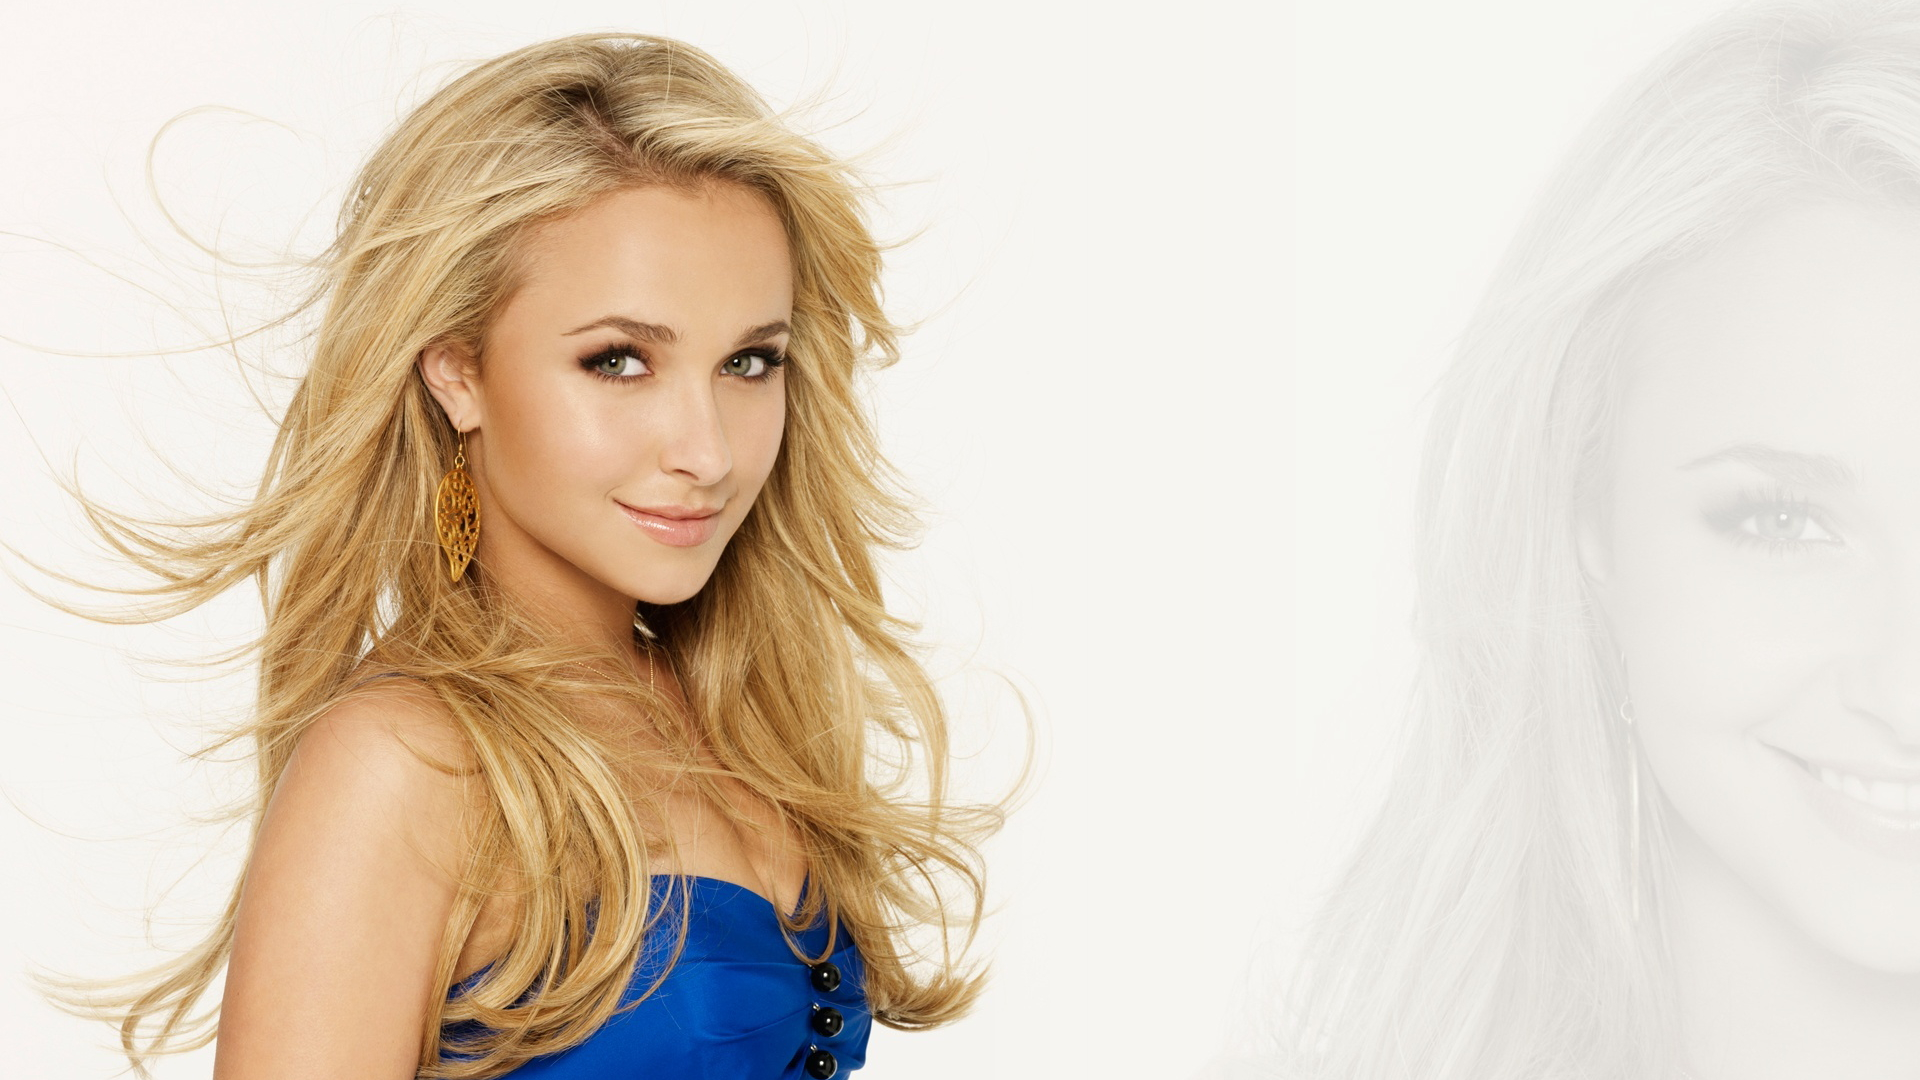 Hayden Panettiere - Pretty in Blue Wallpapers